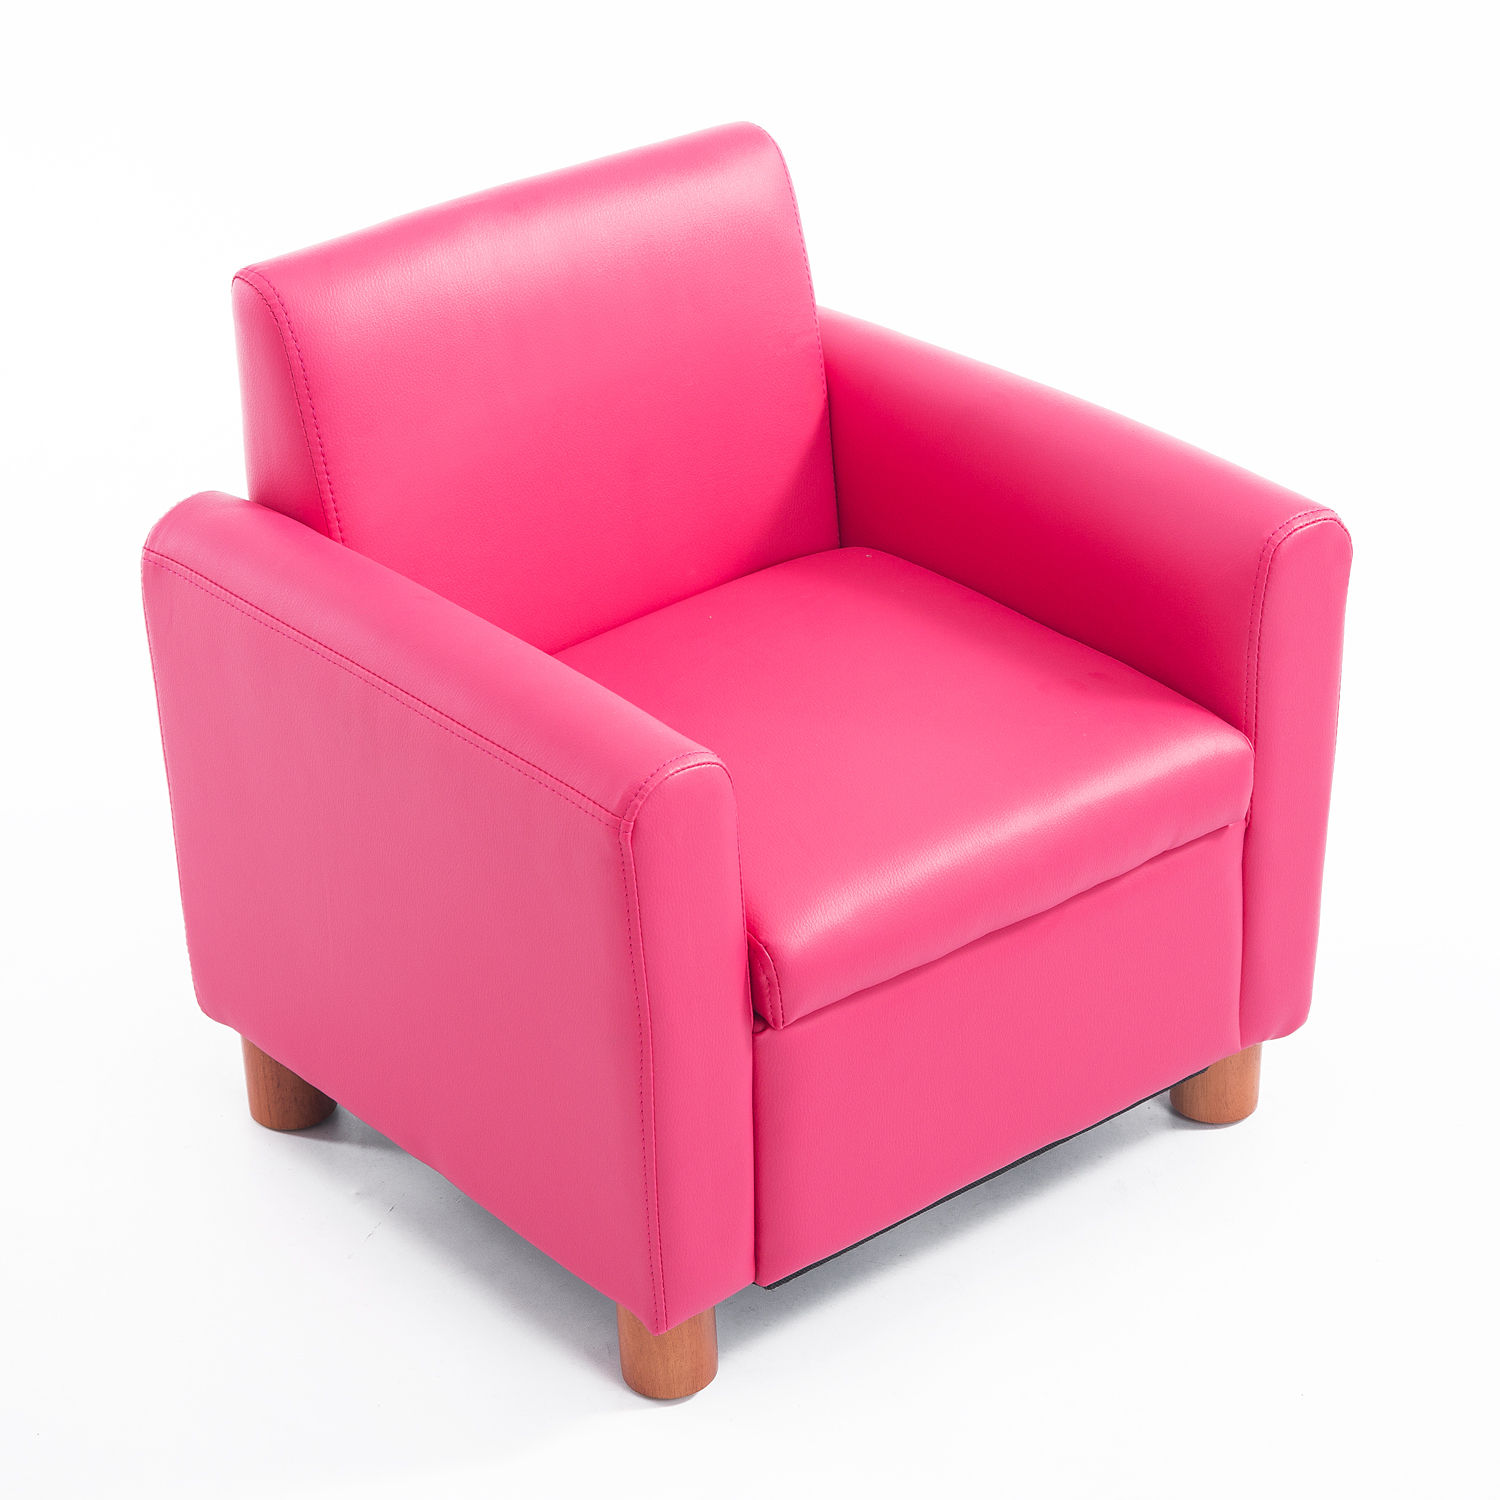 Kids Sofa Single PU Leather Armchair Pink Toddler Couch ...